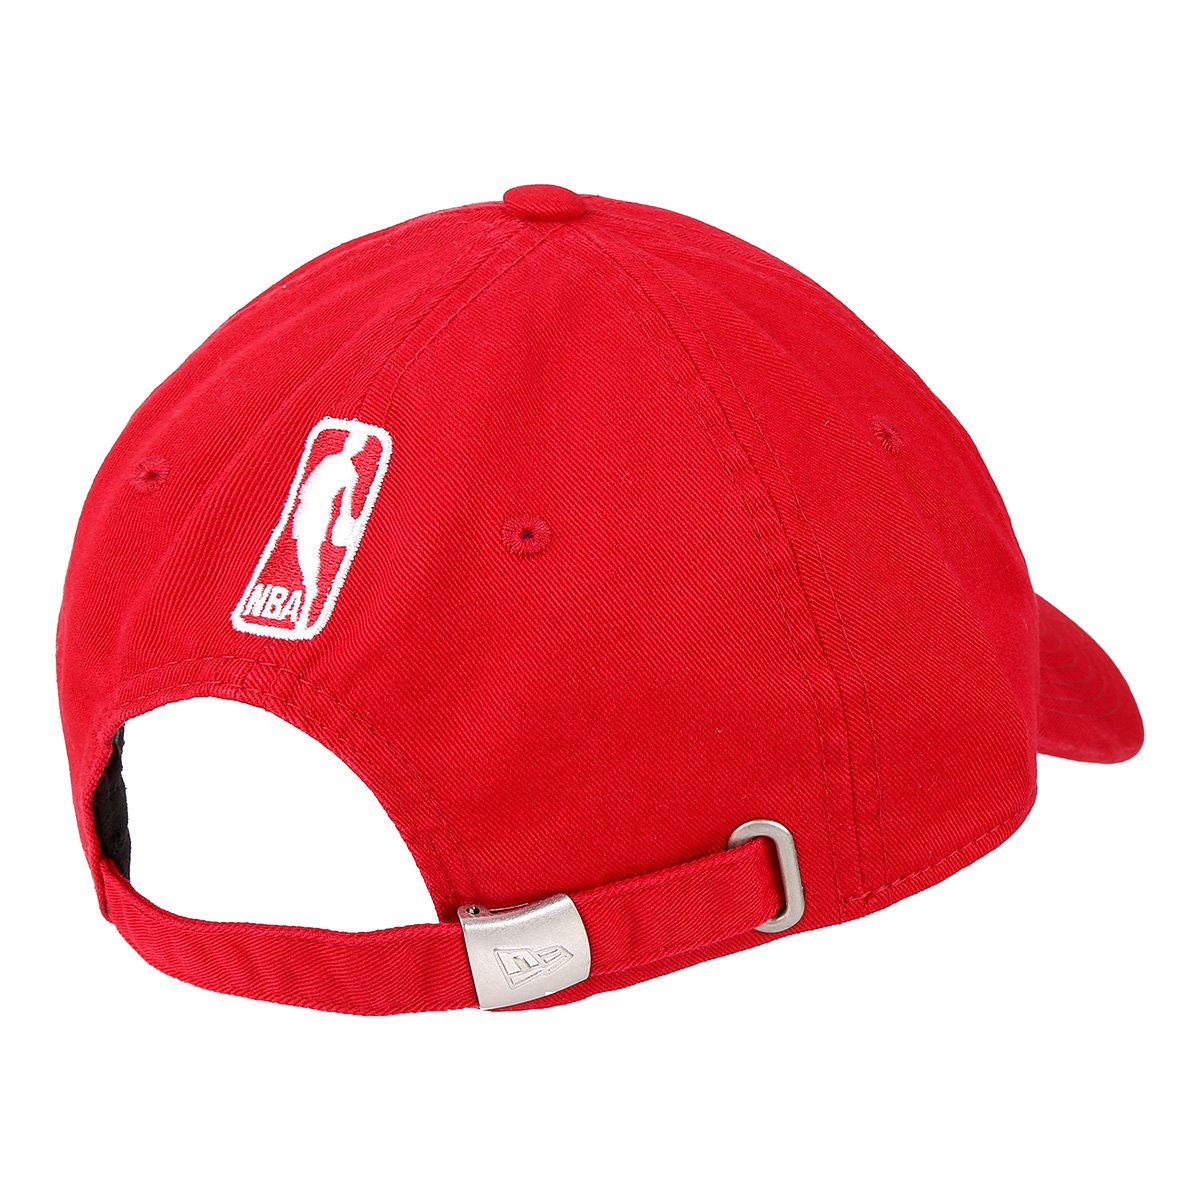 e723076bc ... Foto 2 - Boné New Era NBA Chicago Bulls Aba Curva Mini Script